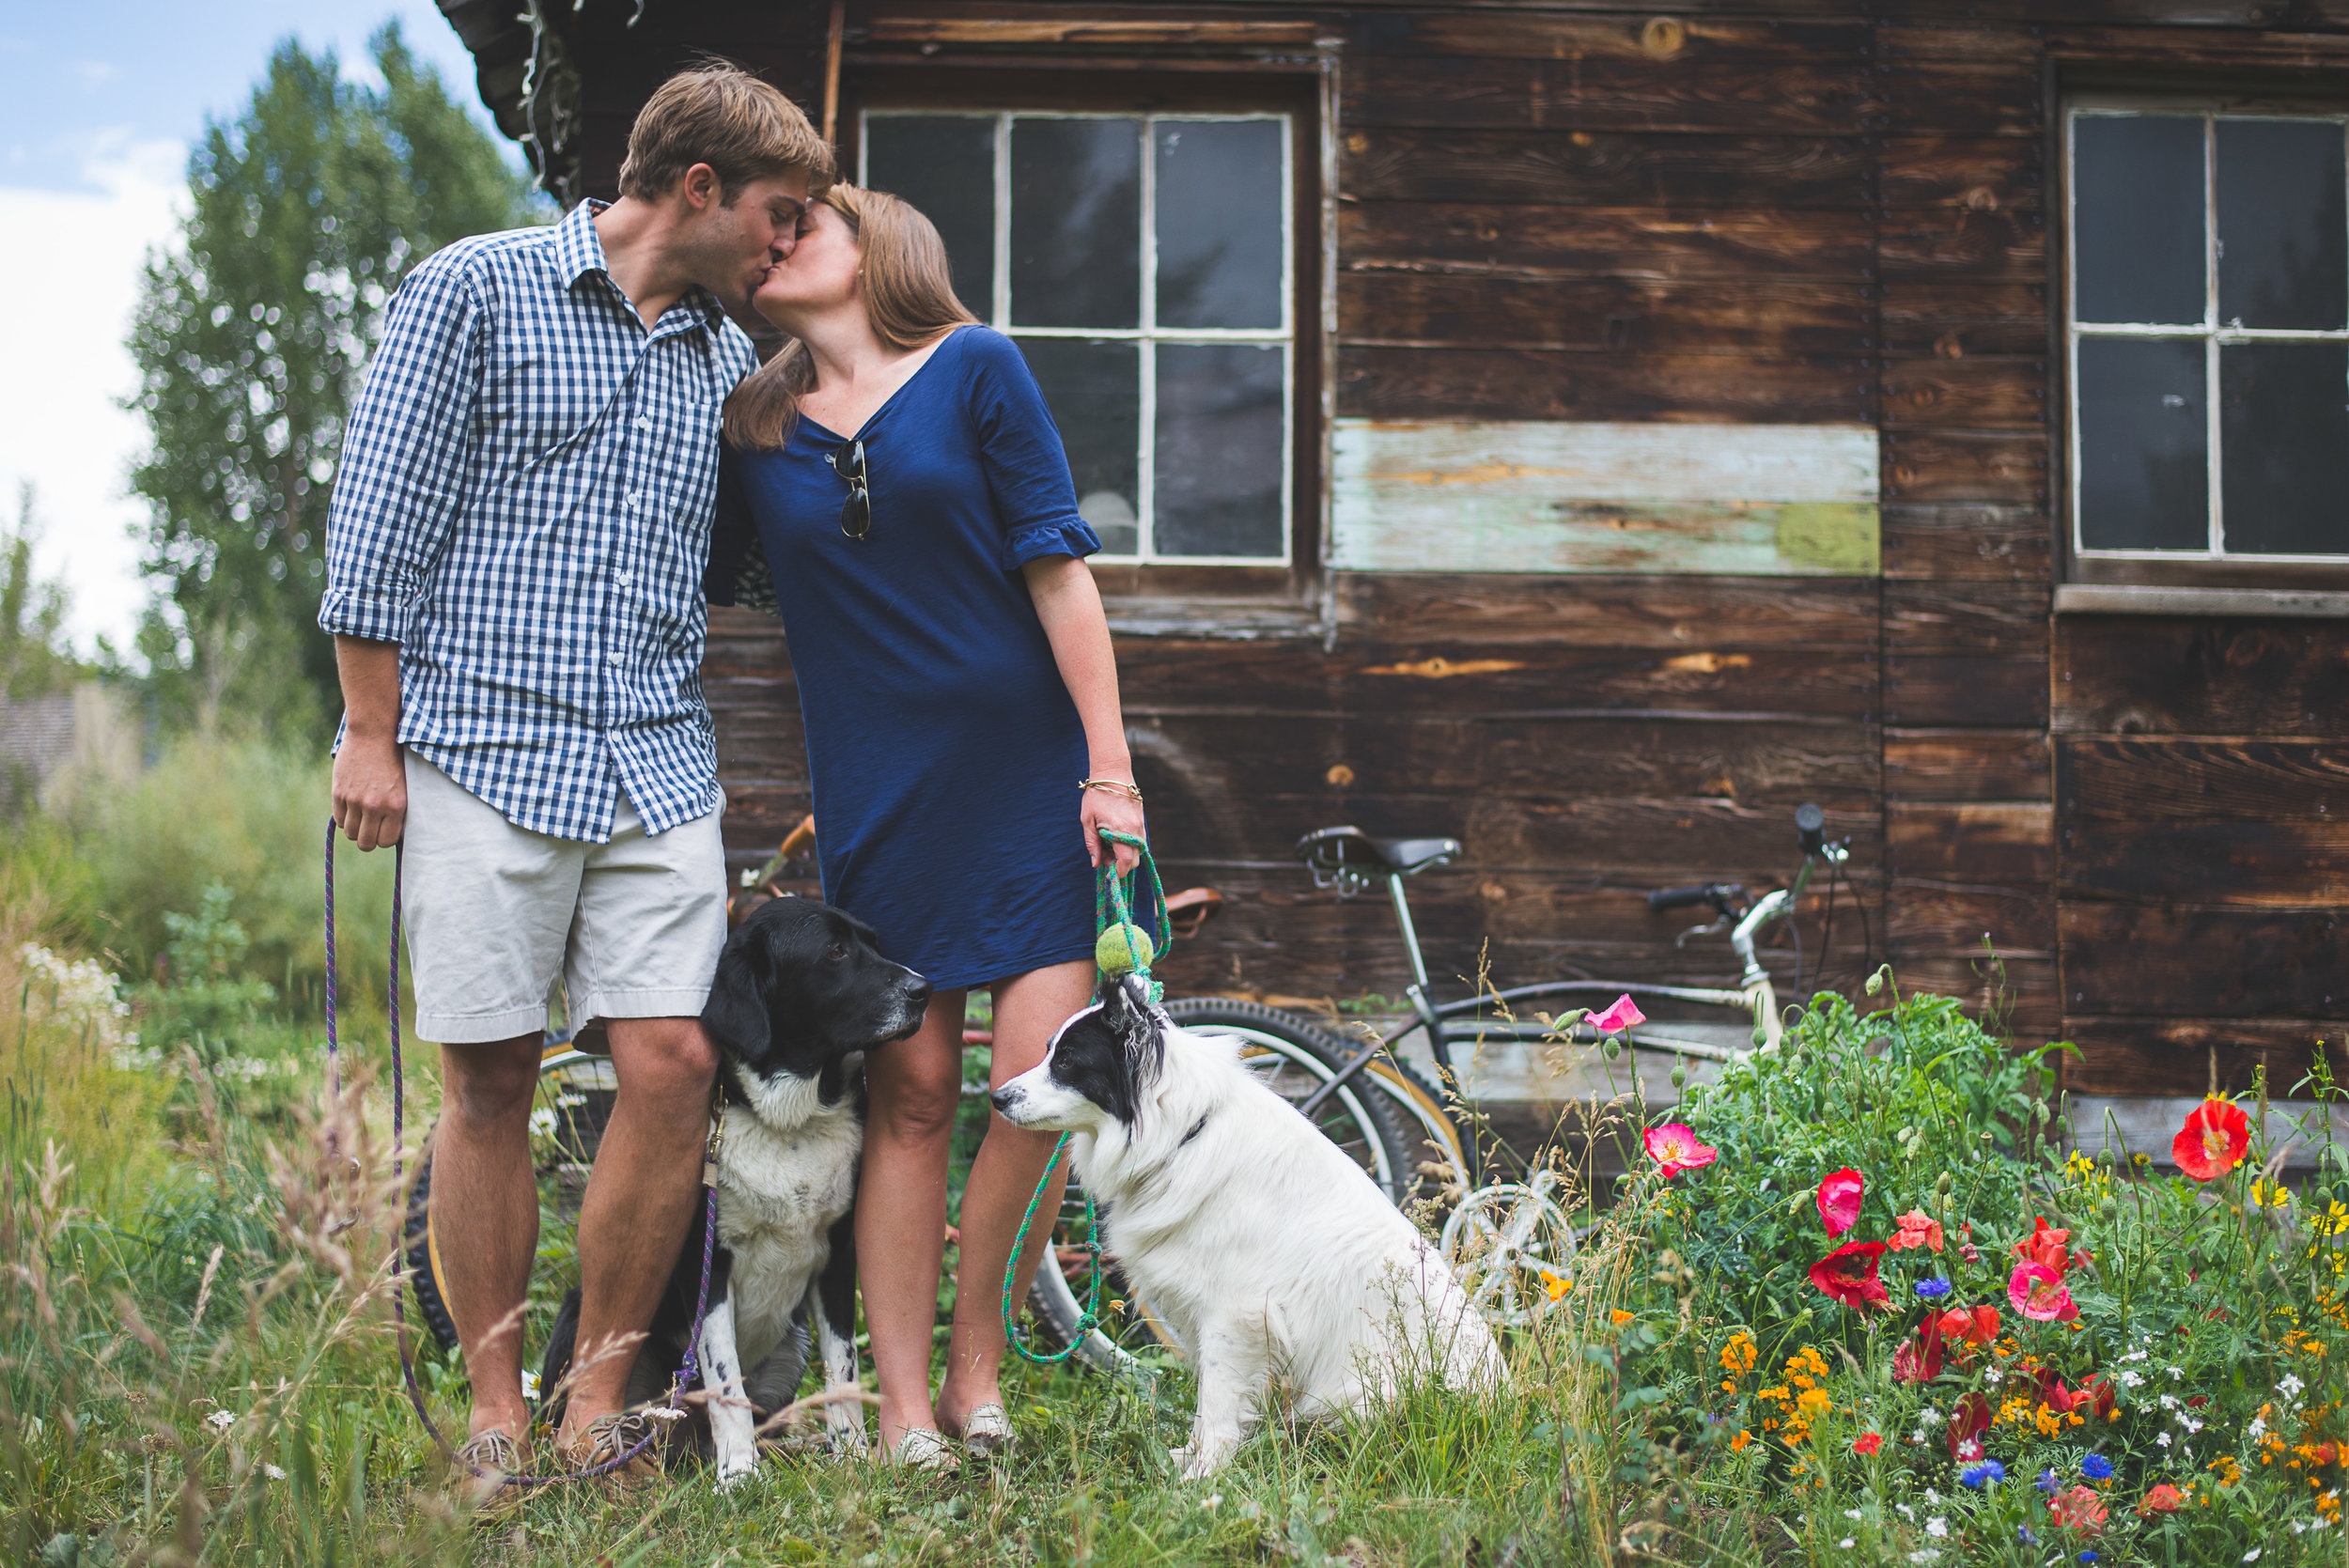 Engagement session in Frisco, Colorado | Selecting the Right Location | Keeping Composure Photography